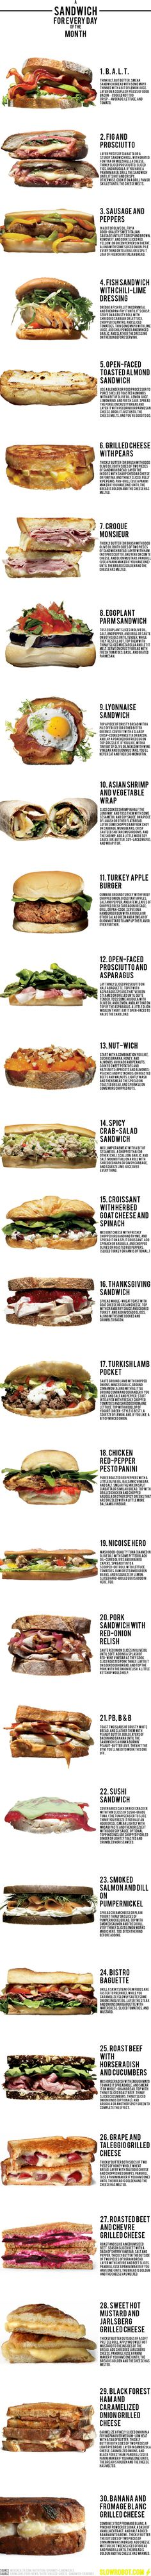 """A New Sandwich for Every Day of the Month"" by slowrobot. Sources: menshealth and chow: Each one yummy and just a little surprising!   #Infographic #Sandwiches / I'm itching to try: #17, 21, 30 Gourmet Sandwiches, Delicious Sandwiches, Wrap Sandwiches, List Of Sandwiches, Specialty Sandwiches, Finger Sandwiches, Healthy Sandwiches, I Love Food, Good Food"